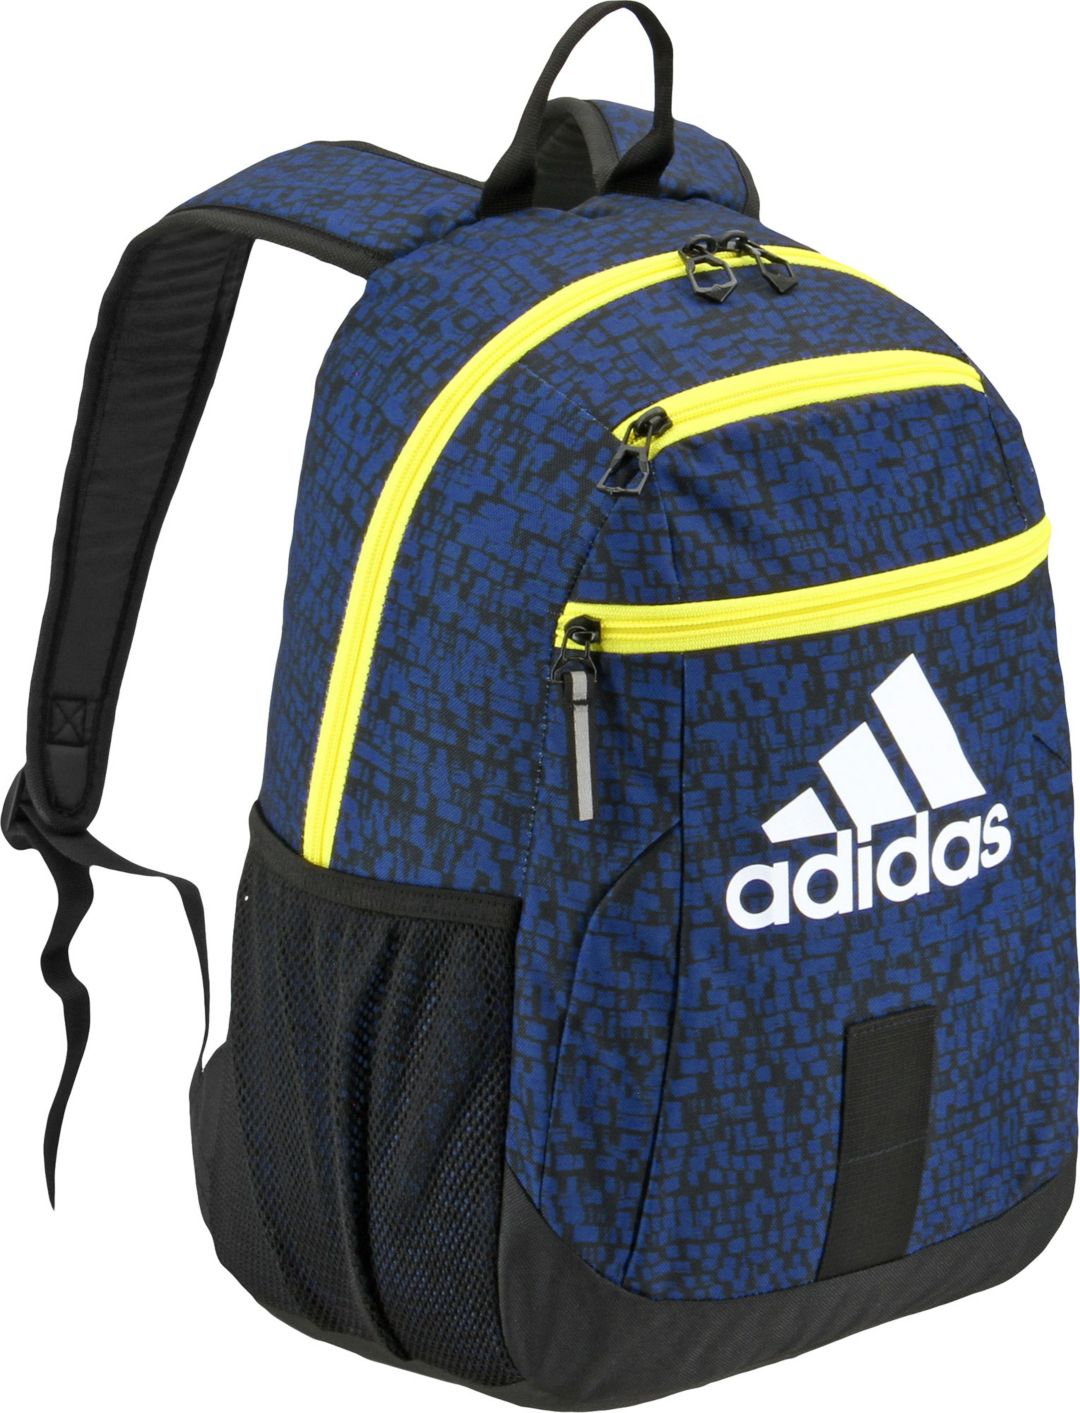 3ee5bb1a91 adidas Youth Young Creator Backpack | Best Price Guarantee at DICK'S